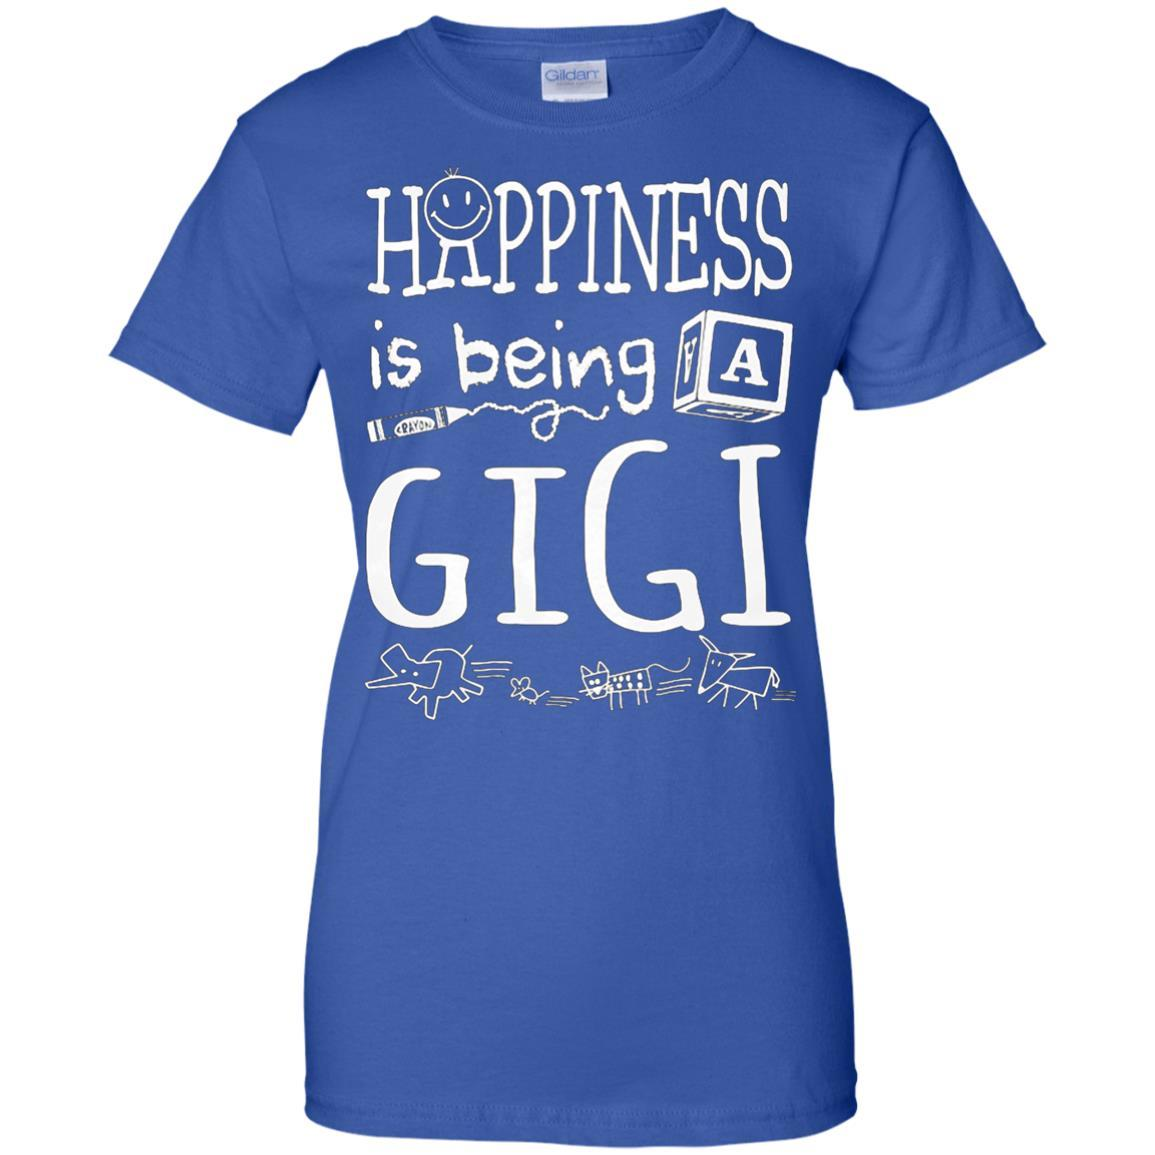 Happiness Is Being A Gigi T-Shirts Gift For Grandma Nana